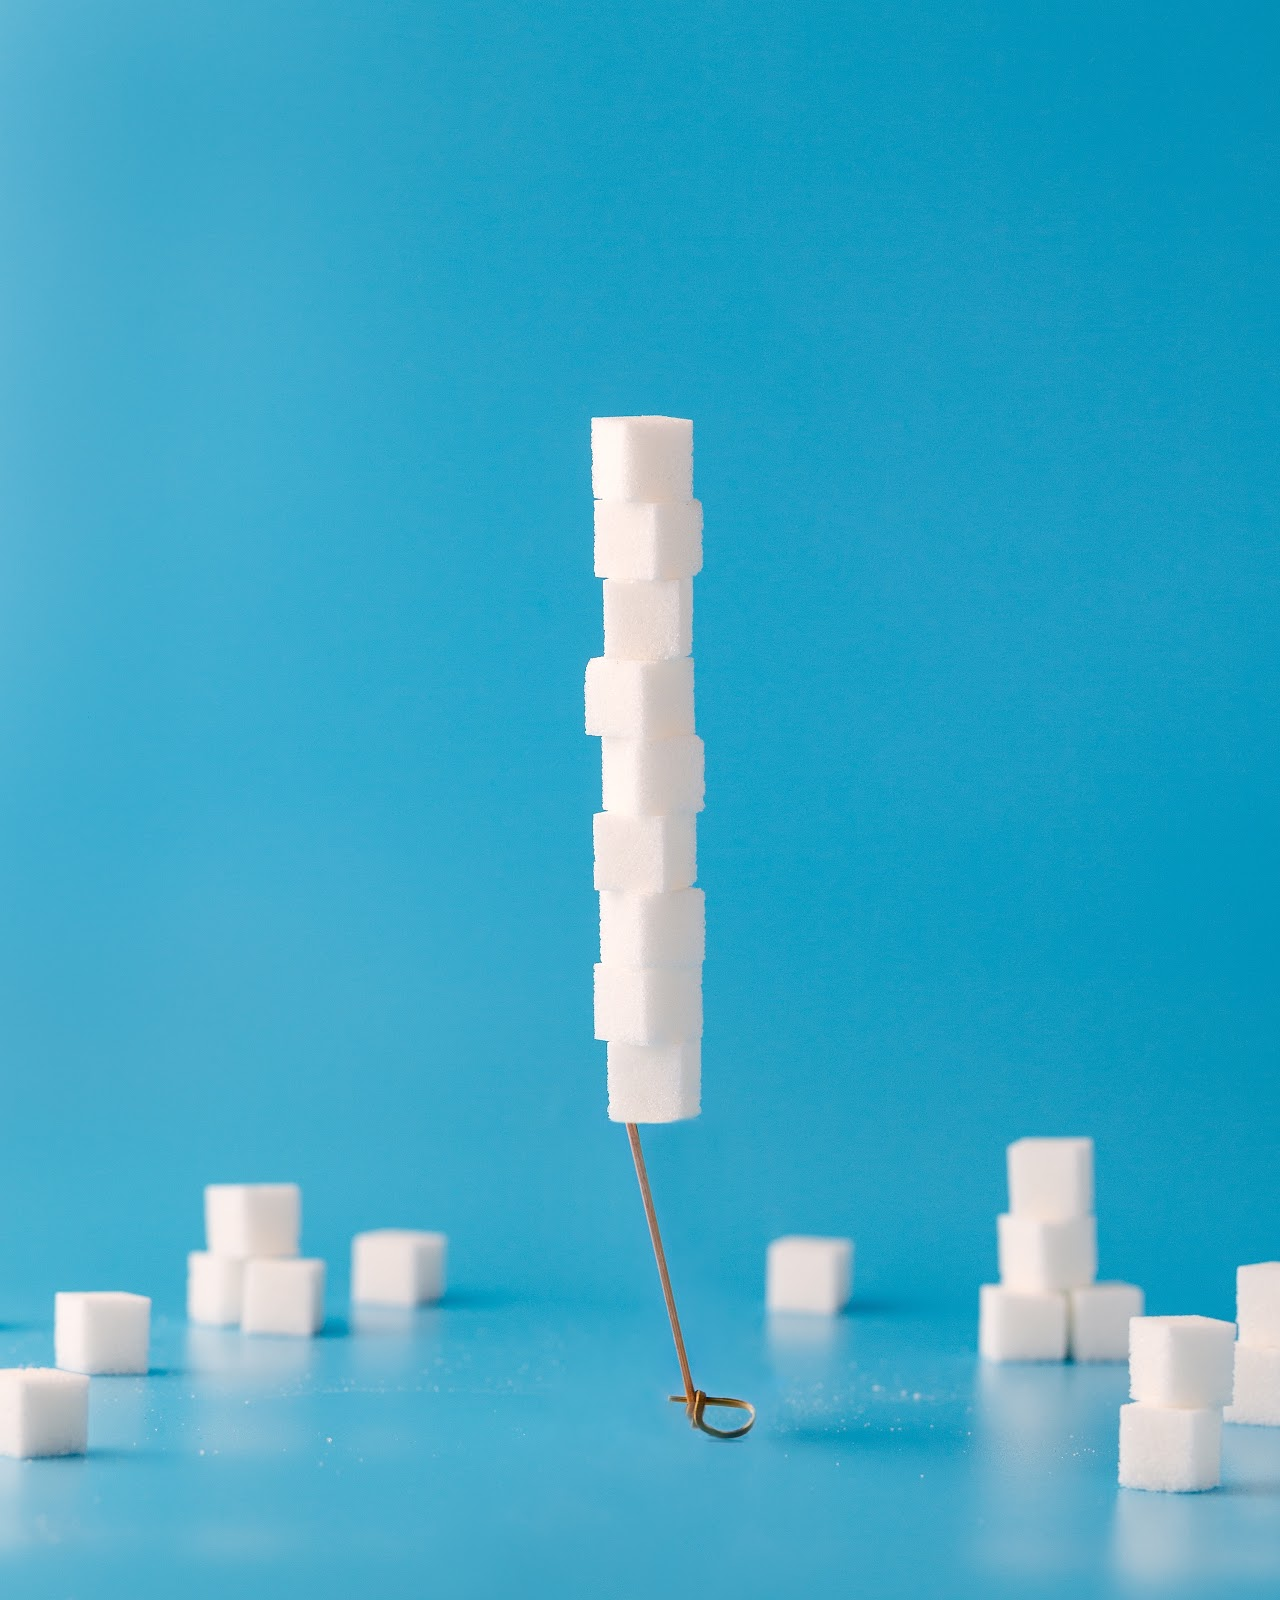 Sugar cubes stacked on top of one another suspended in mid air.